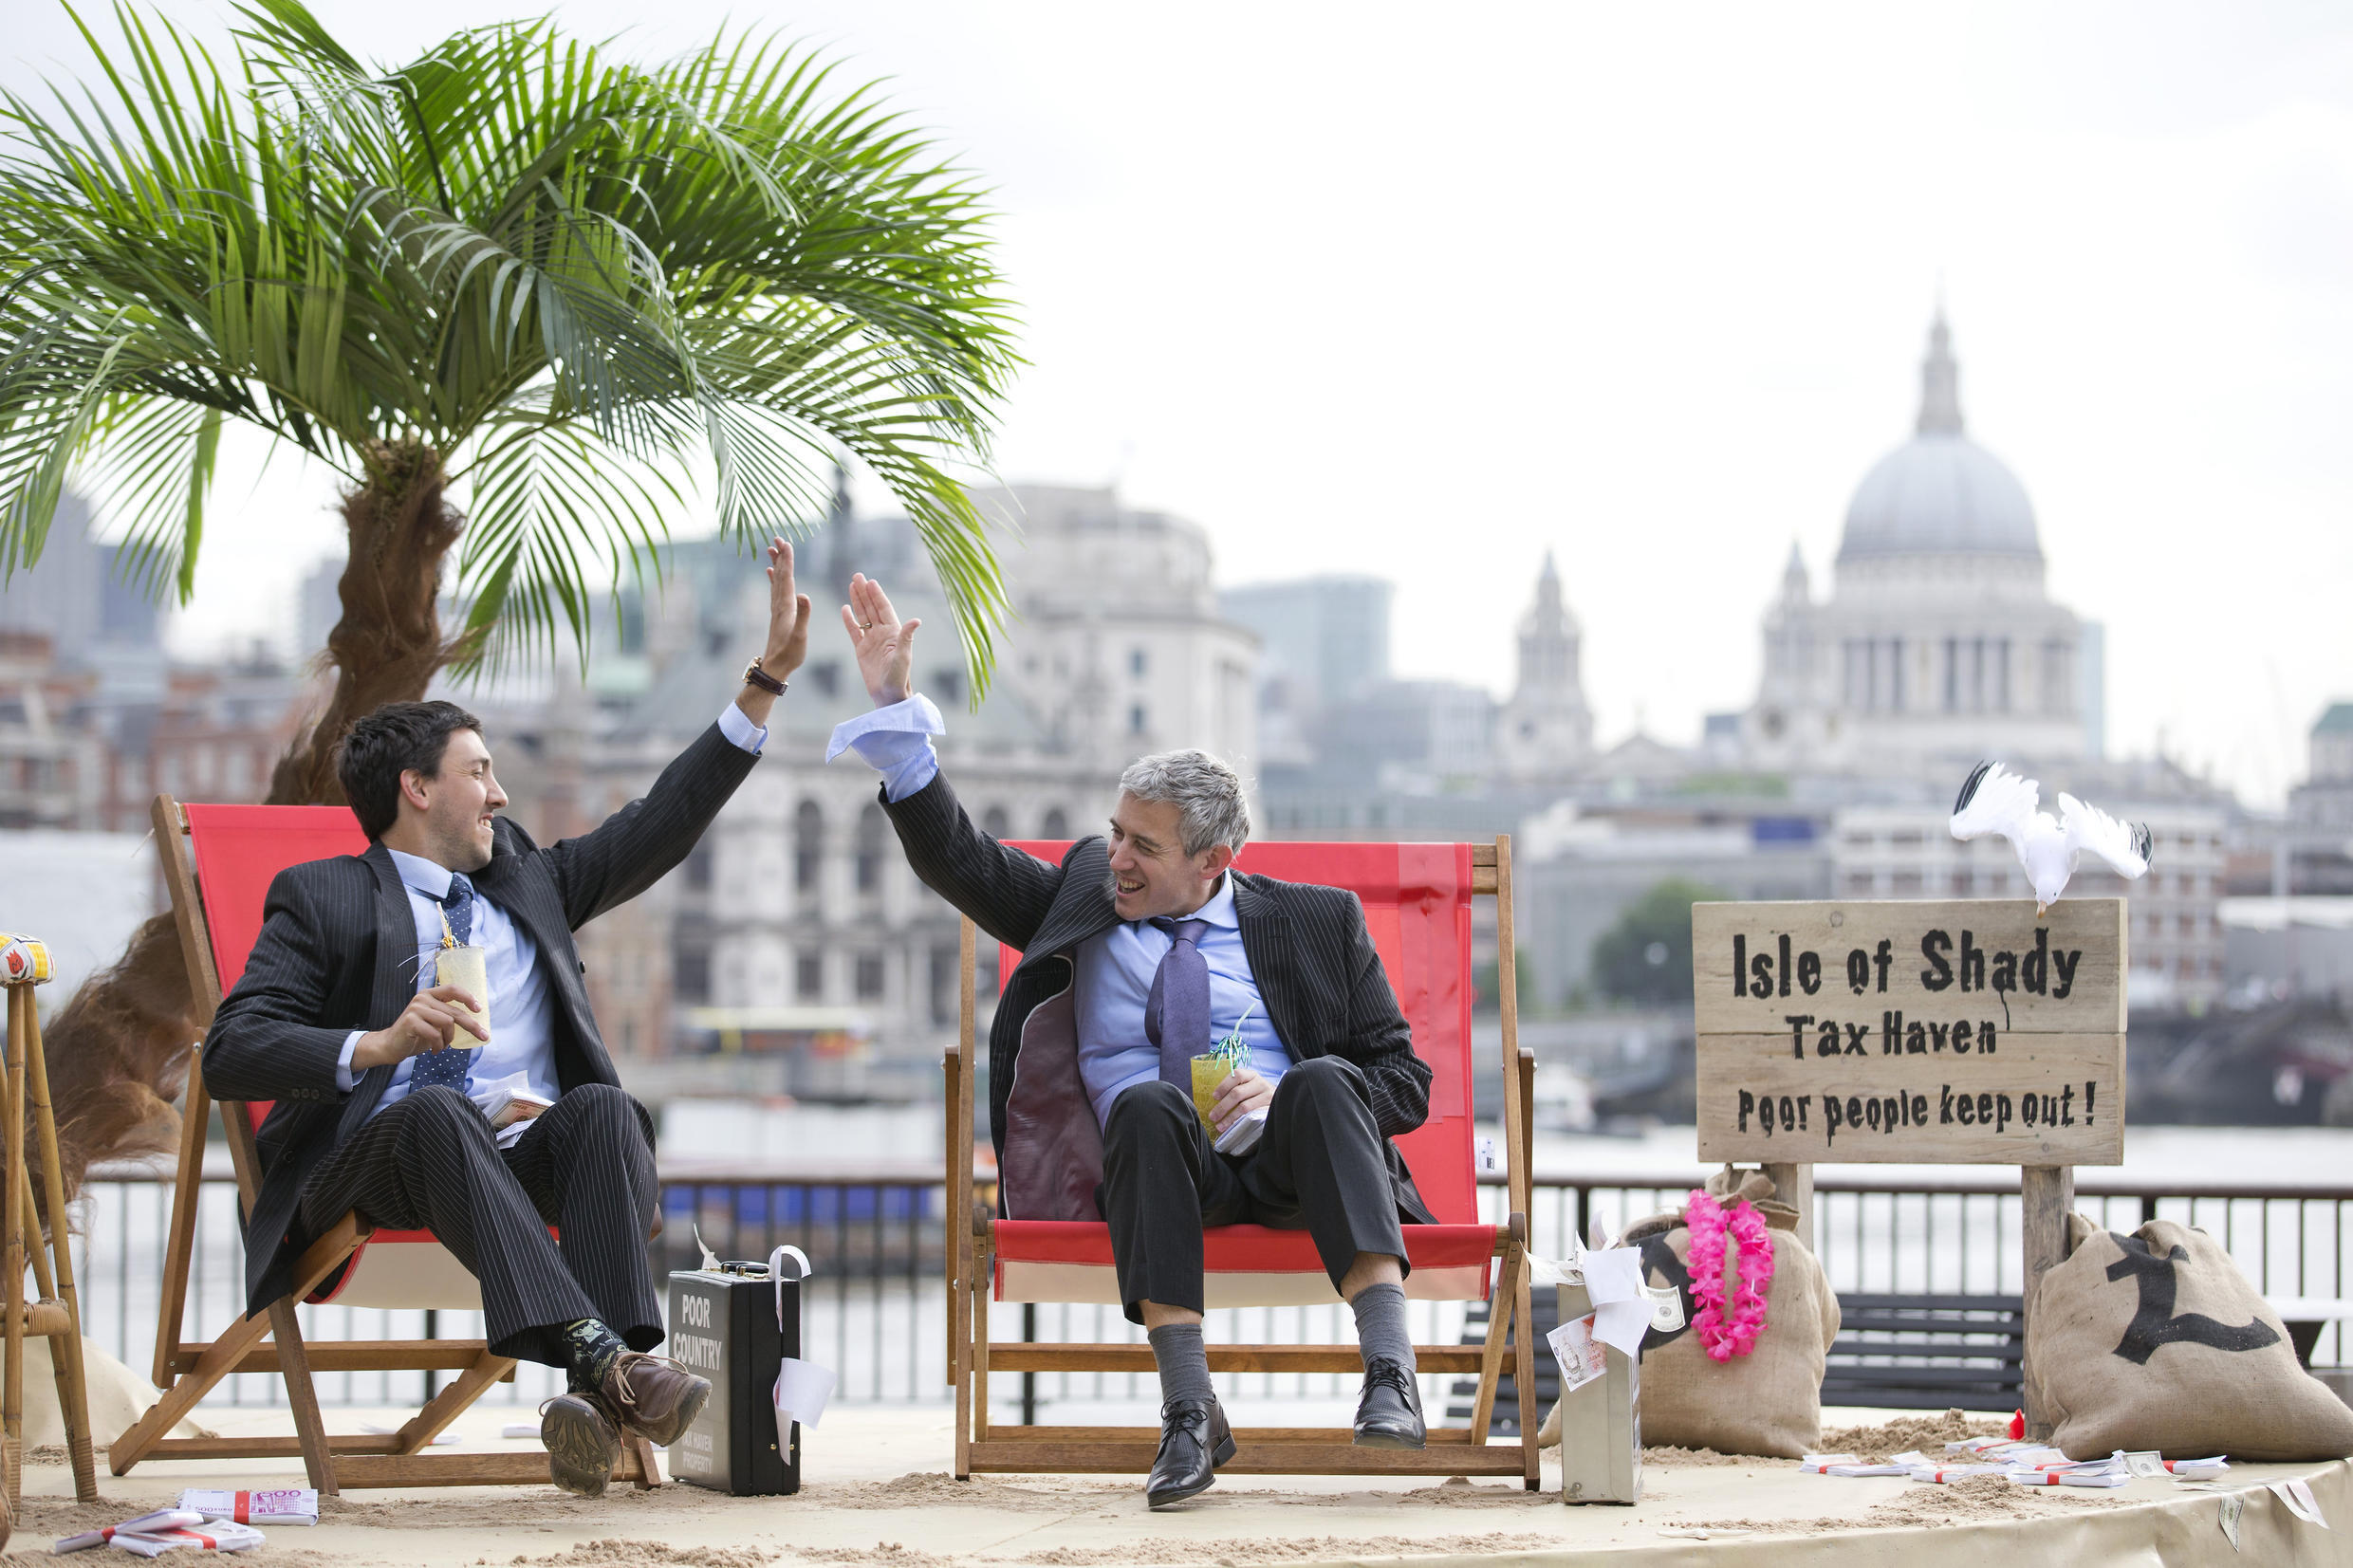 Mockery aside, advanced economies have found it hard to counter the lure of tax havens